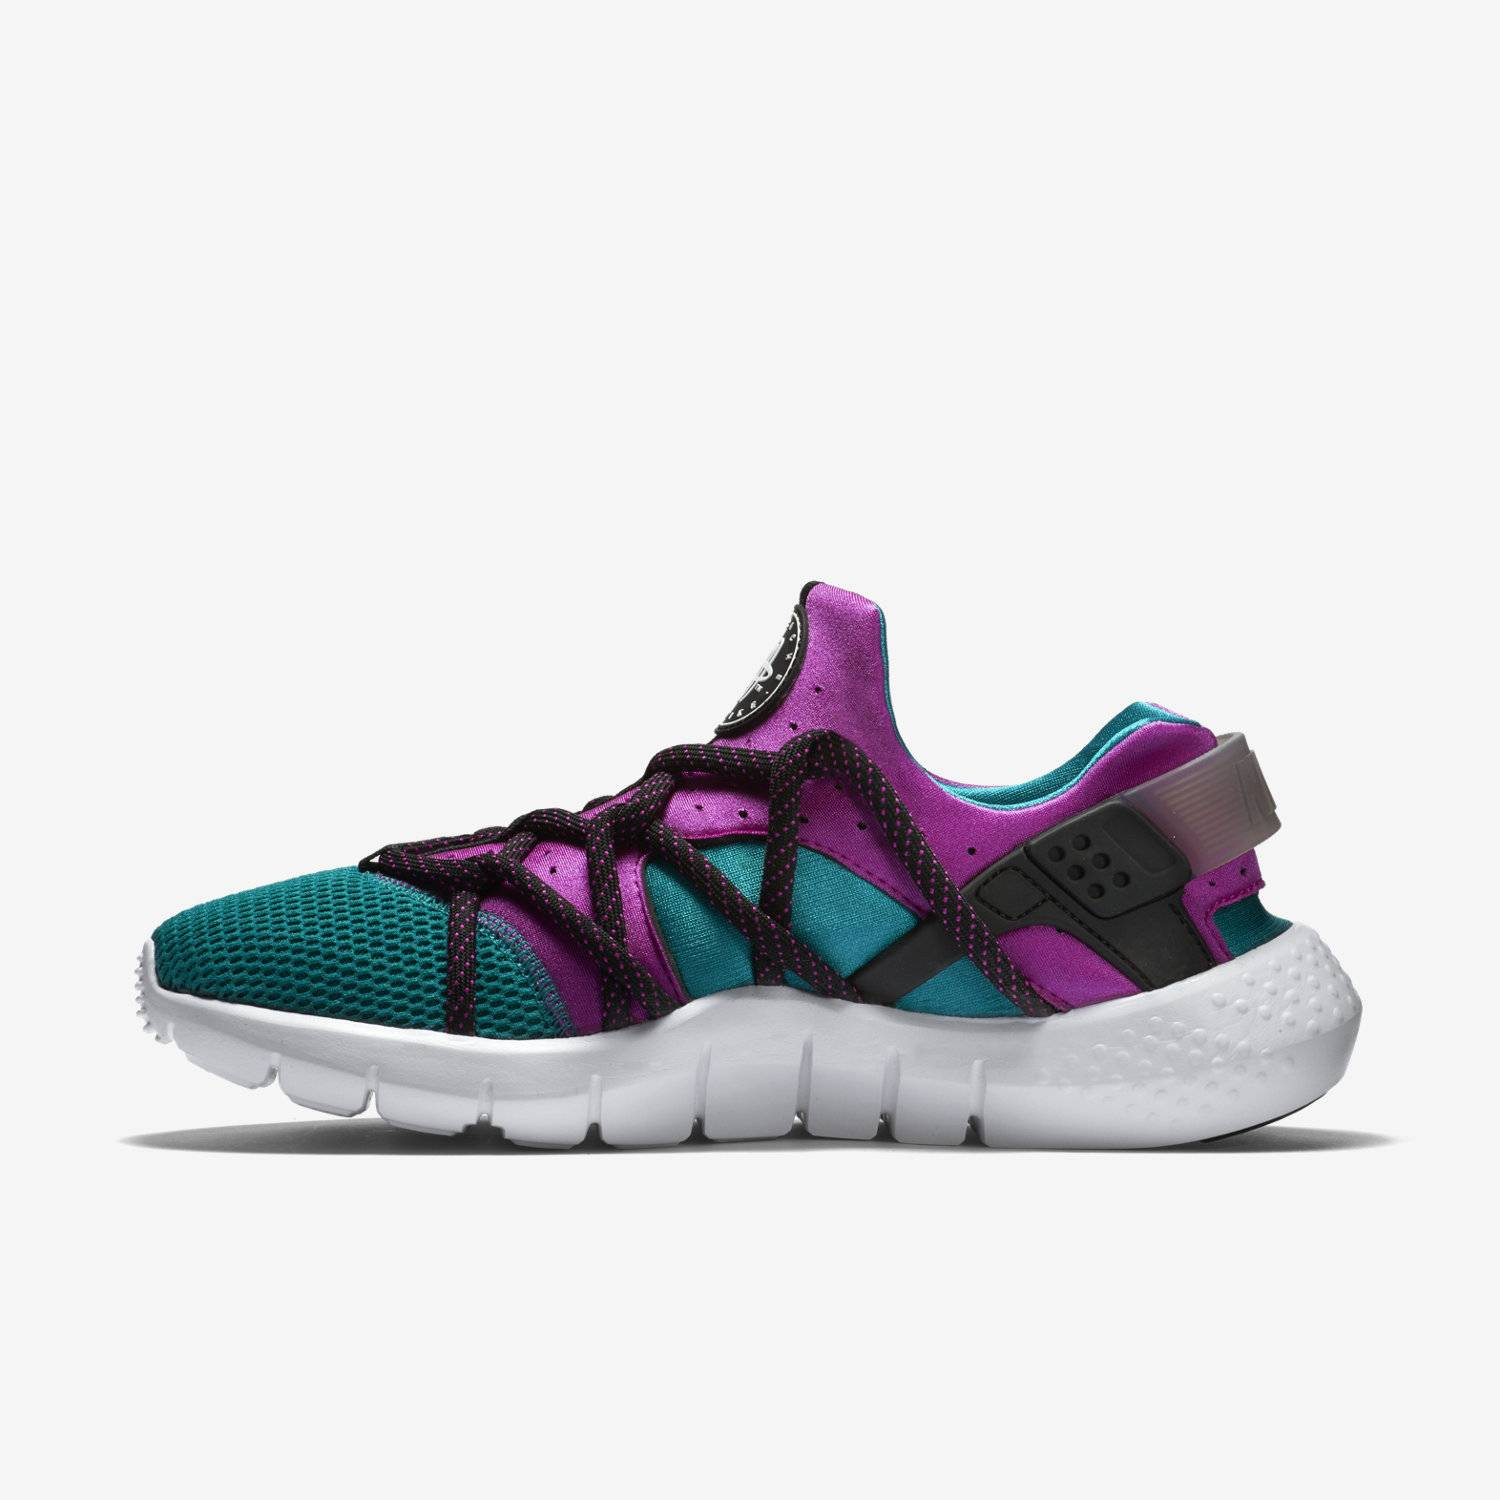 newest a7c34 eda84 ... Huarache NM - Nike - 705159 601 GOAT Cheap Nike Wmns Air Huarache Run  Prm Hot Lava ...